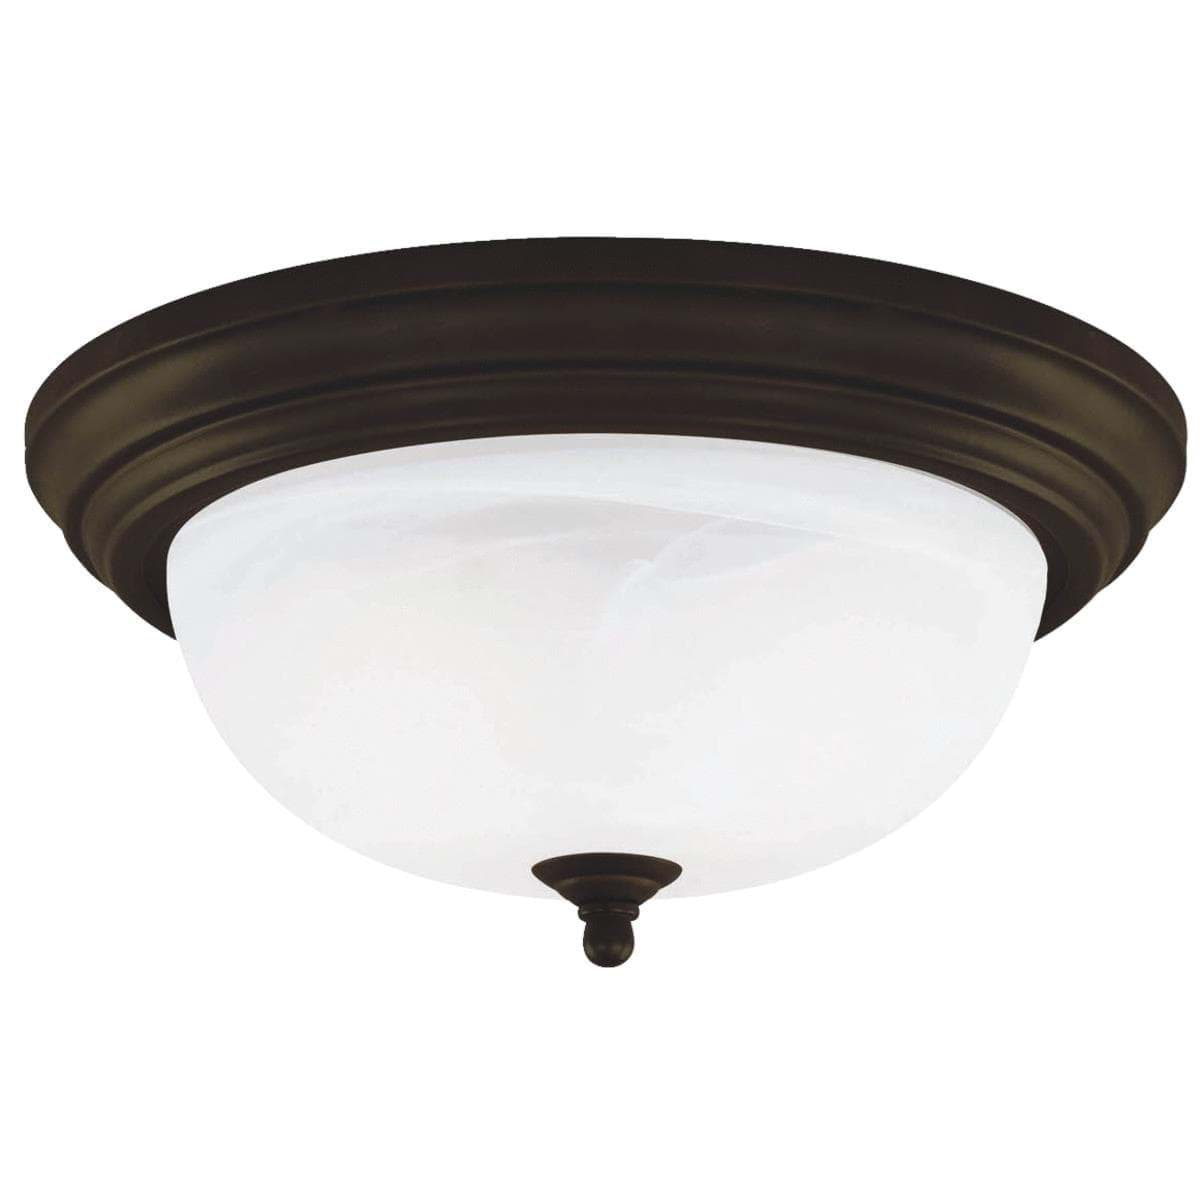 Ropesoapndope Home Impressions 11 In Flush Mount Ceiling